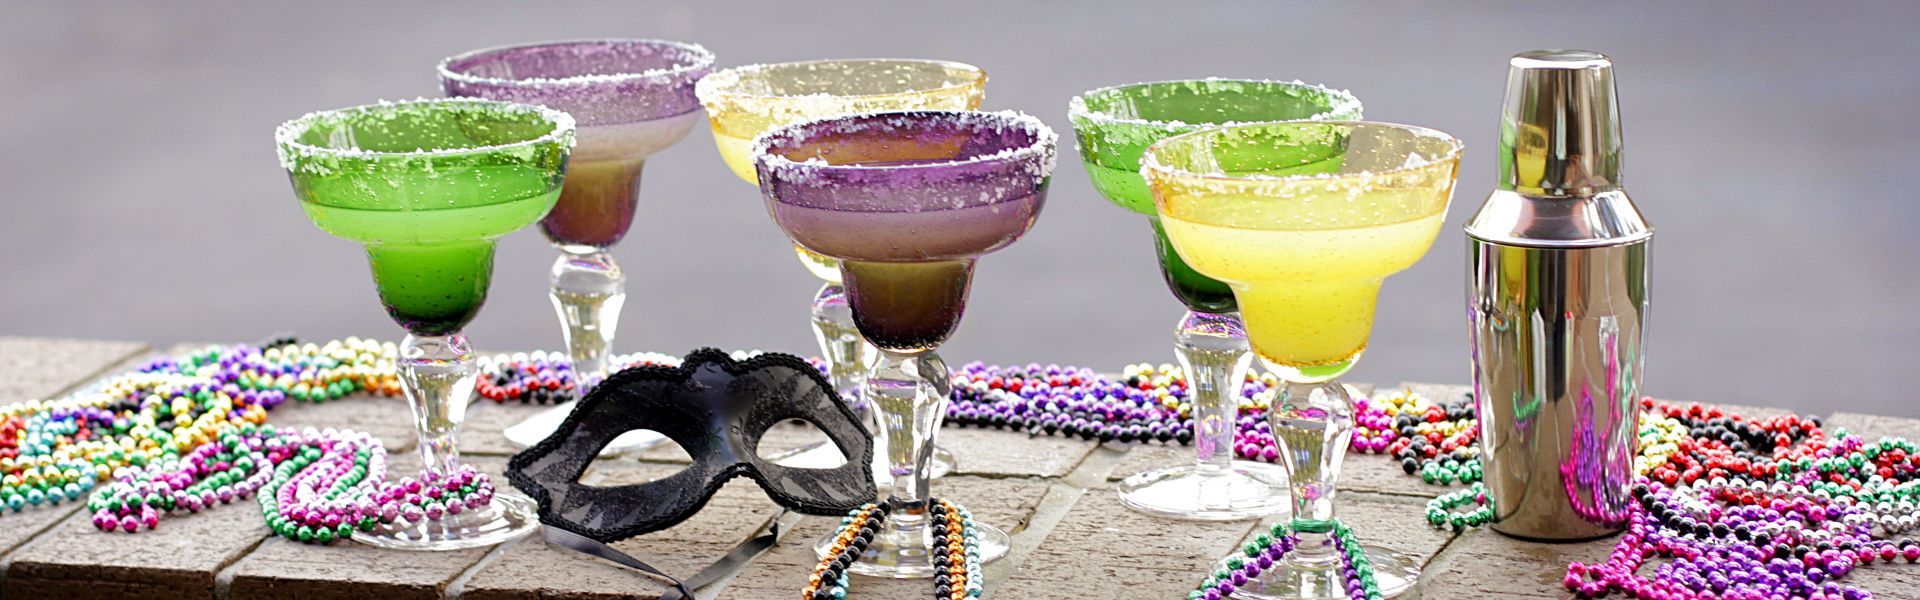 Mardi Gras Glassware and Accessories